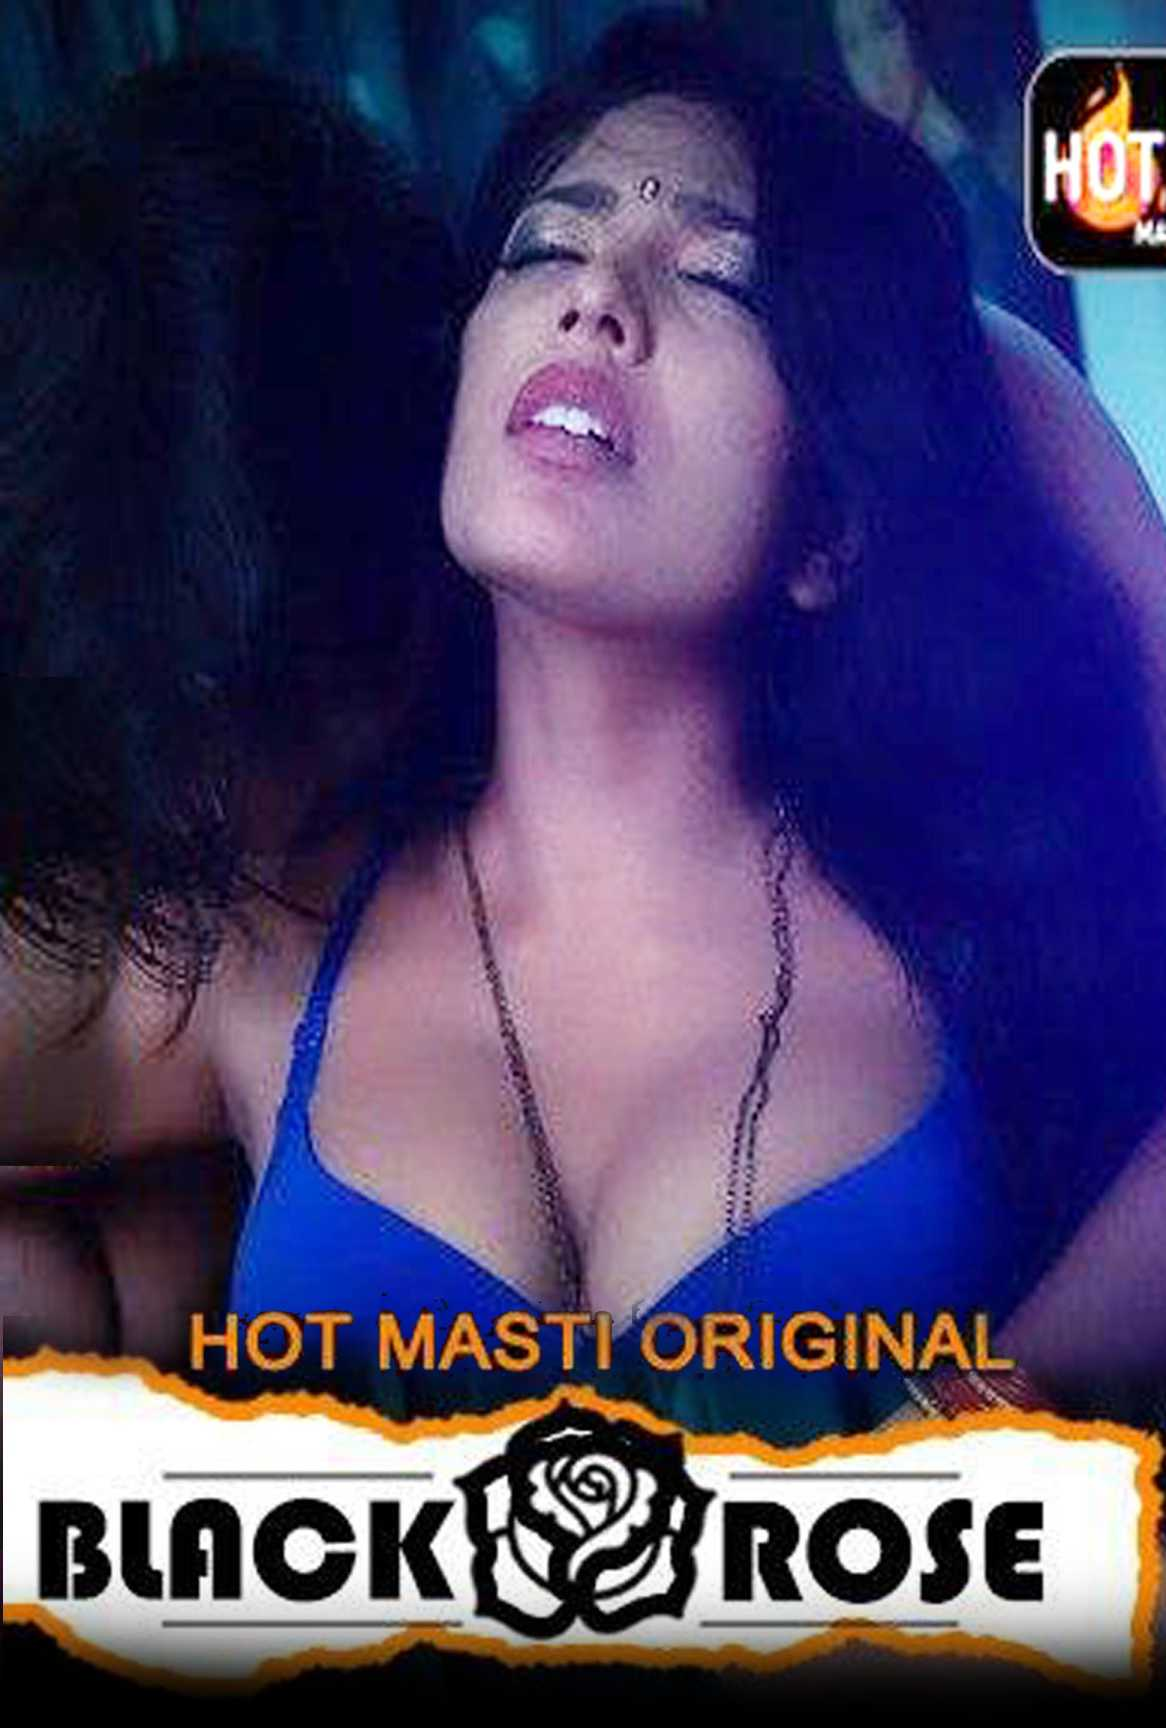 Black Rose 2020 S01E02 Hindi HotMasti Original Web Series 720p HDRip 160MB x264 AAC